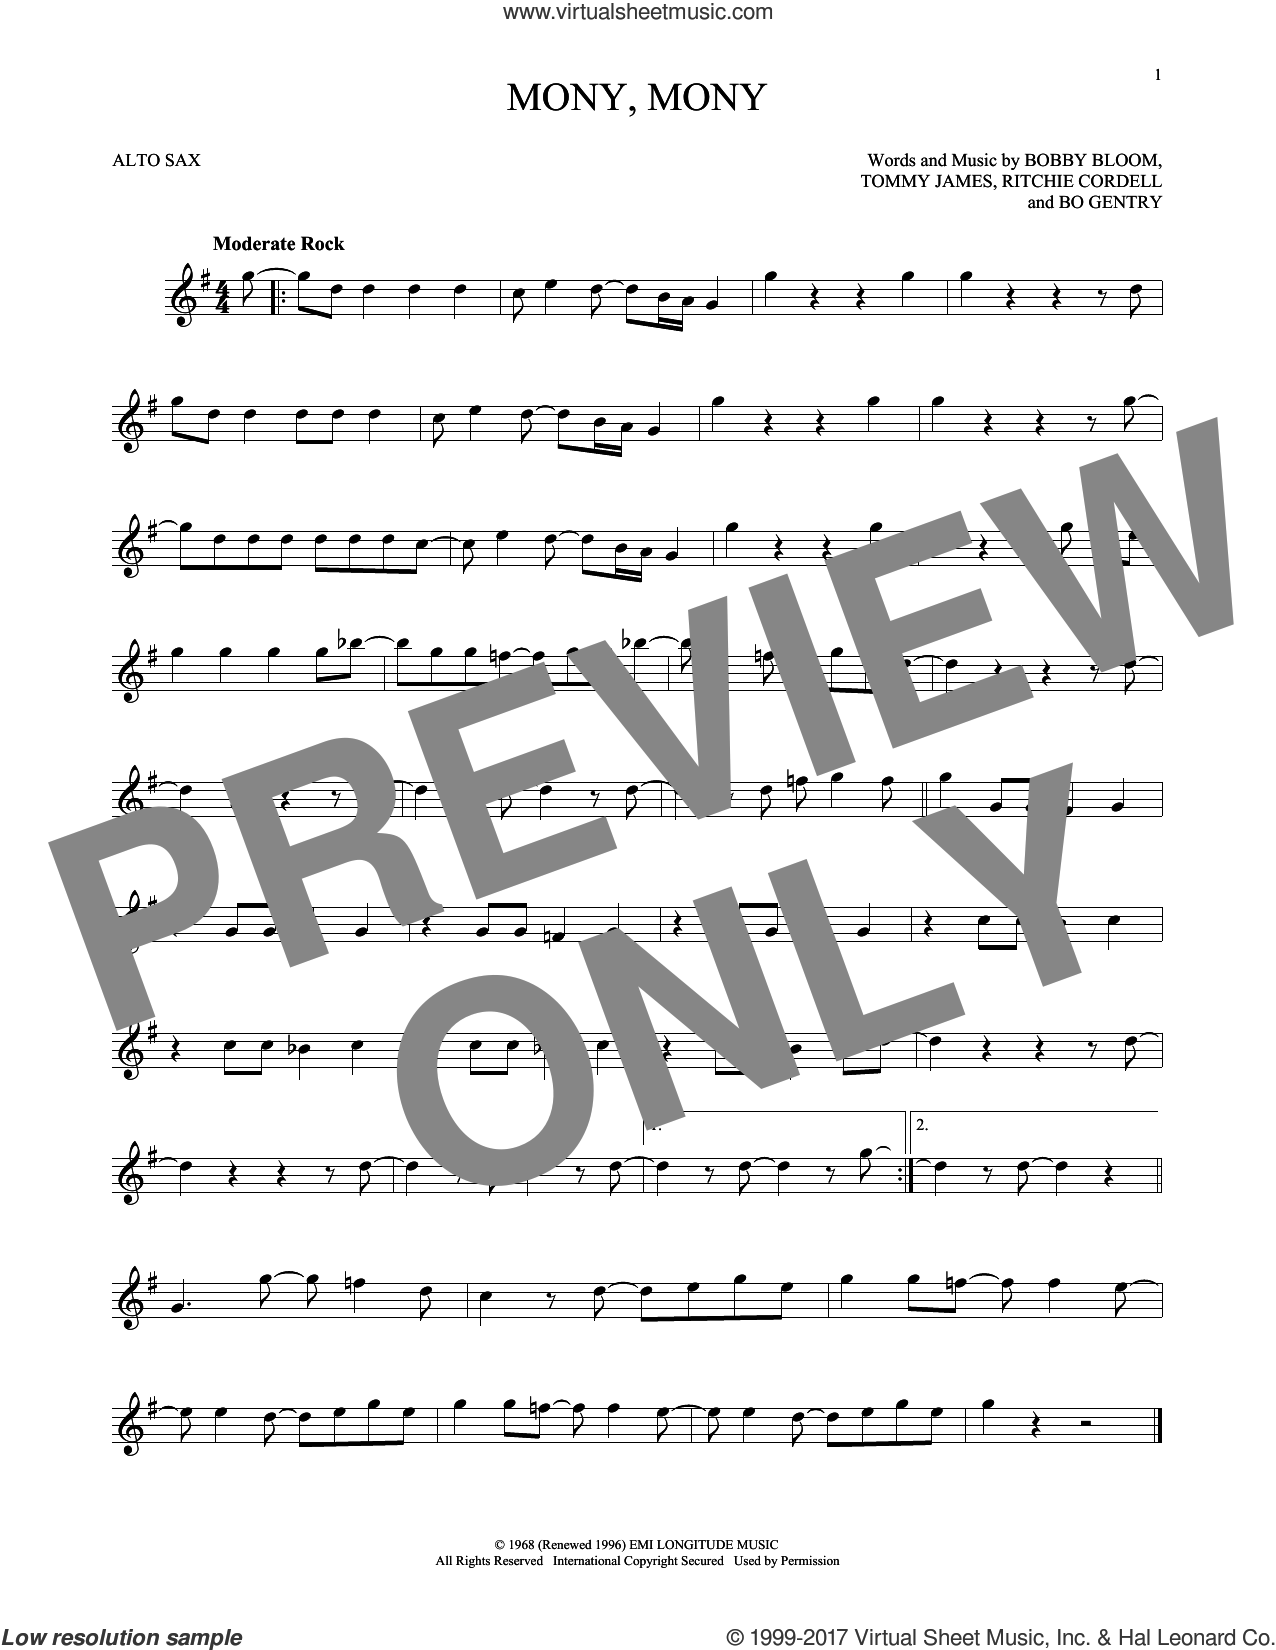 Mony, Mony sheet music for alto saxophone solo ( Sax) by Tommy James & The Shondells, Billy Idol, Bo Gentry, Bobby Bloom, Ritchie Cordell and Tommy James, intermediate alto saxophone ( Sax)